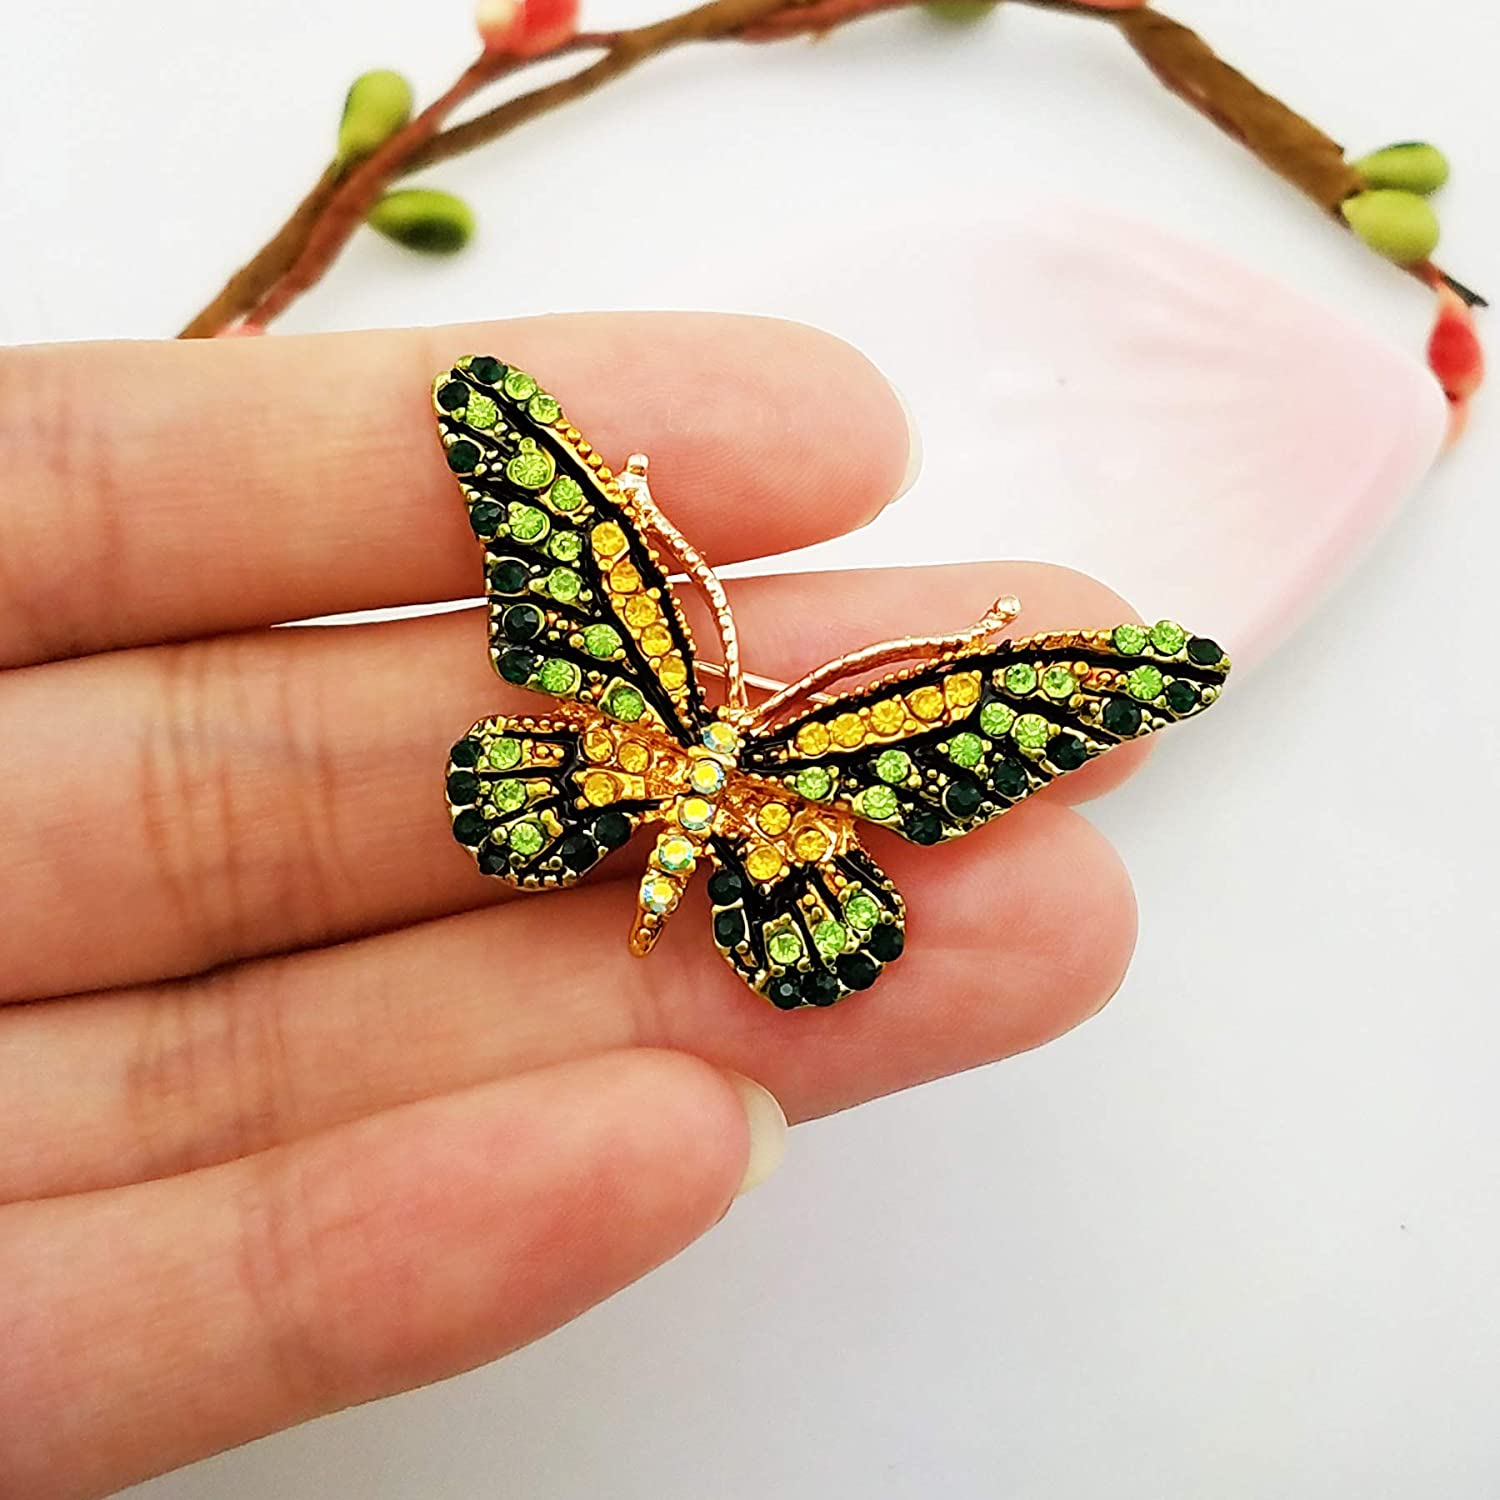 LAXPICOL 2PCS Gold Tone Green Yellow Austrian Crystal Butterfly Brooch Pin Scarf Pin for Women Girls